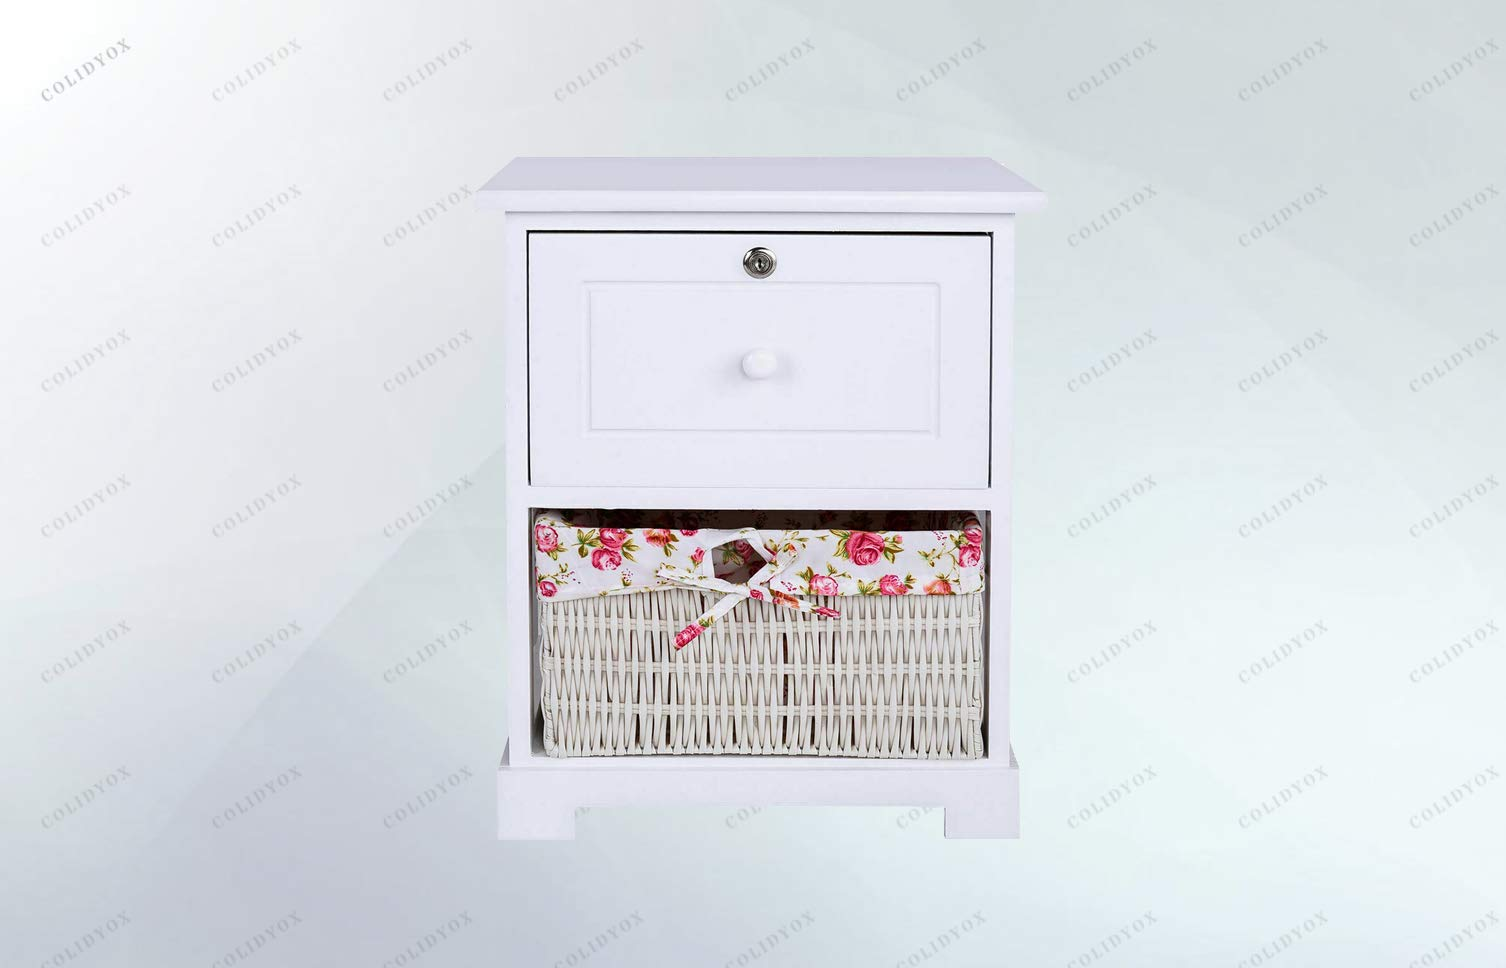 COLIDYOX>2 Tiers Wood Nightstand1 Drawer Bedside End Table Organizer W/Basket White, Solid Wood Construction, Durable and Sturdy, One Cute PVC Basket on The Bottom Shelf, Contemporary and Open Design